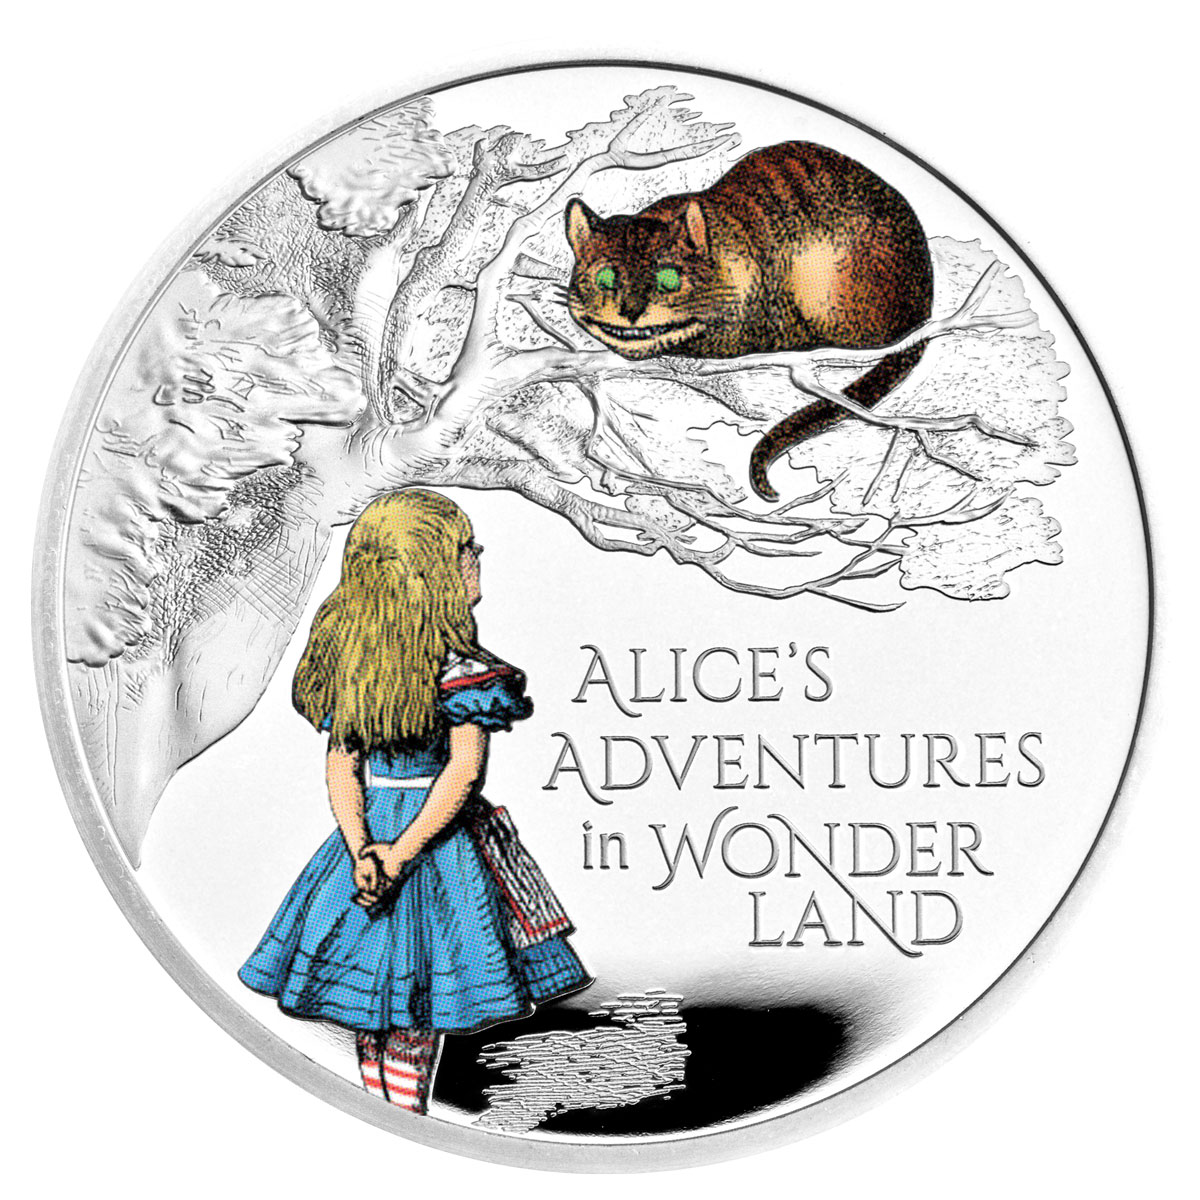 2021 Great Britain Alice's Adventures in Wonderland 1 oz Silver Colorized £2 Coin Proof